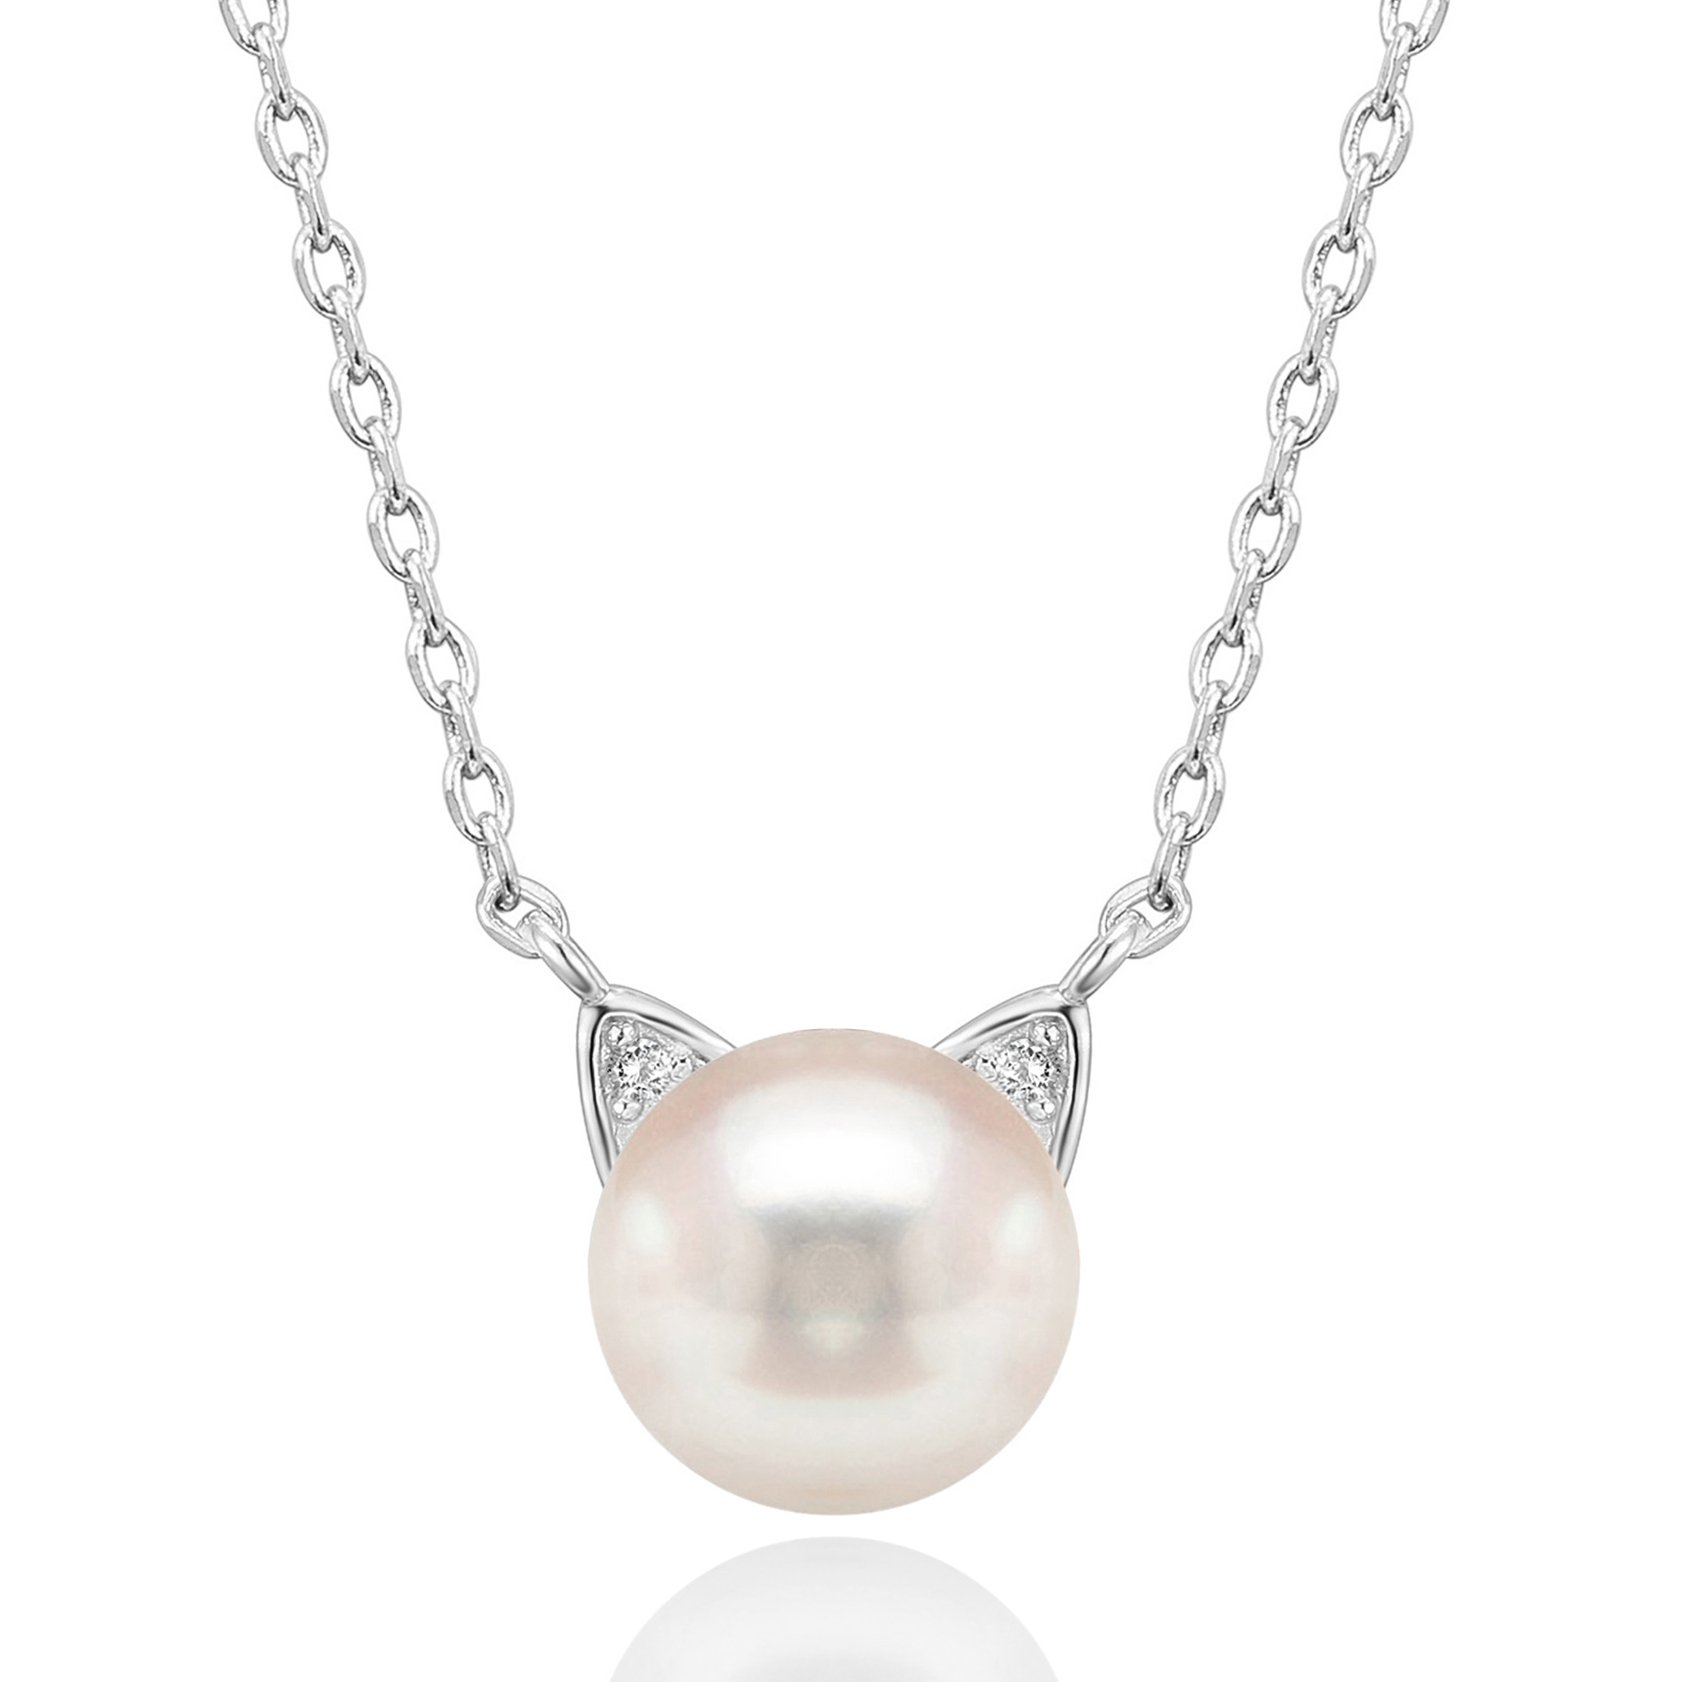 PAVOI Handpicked AAA+ Cat Ear Freshwater Cultured Pearl Necklace Pendant - White